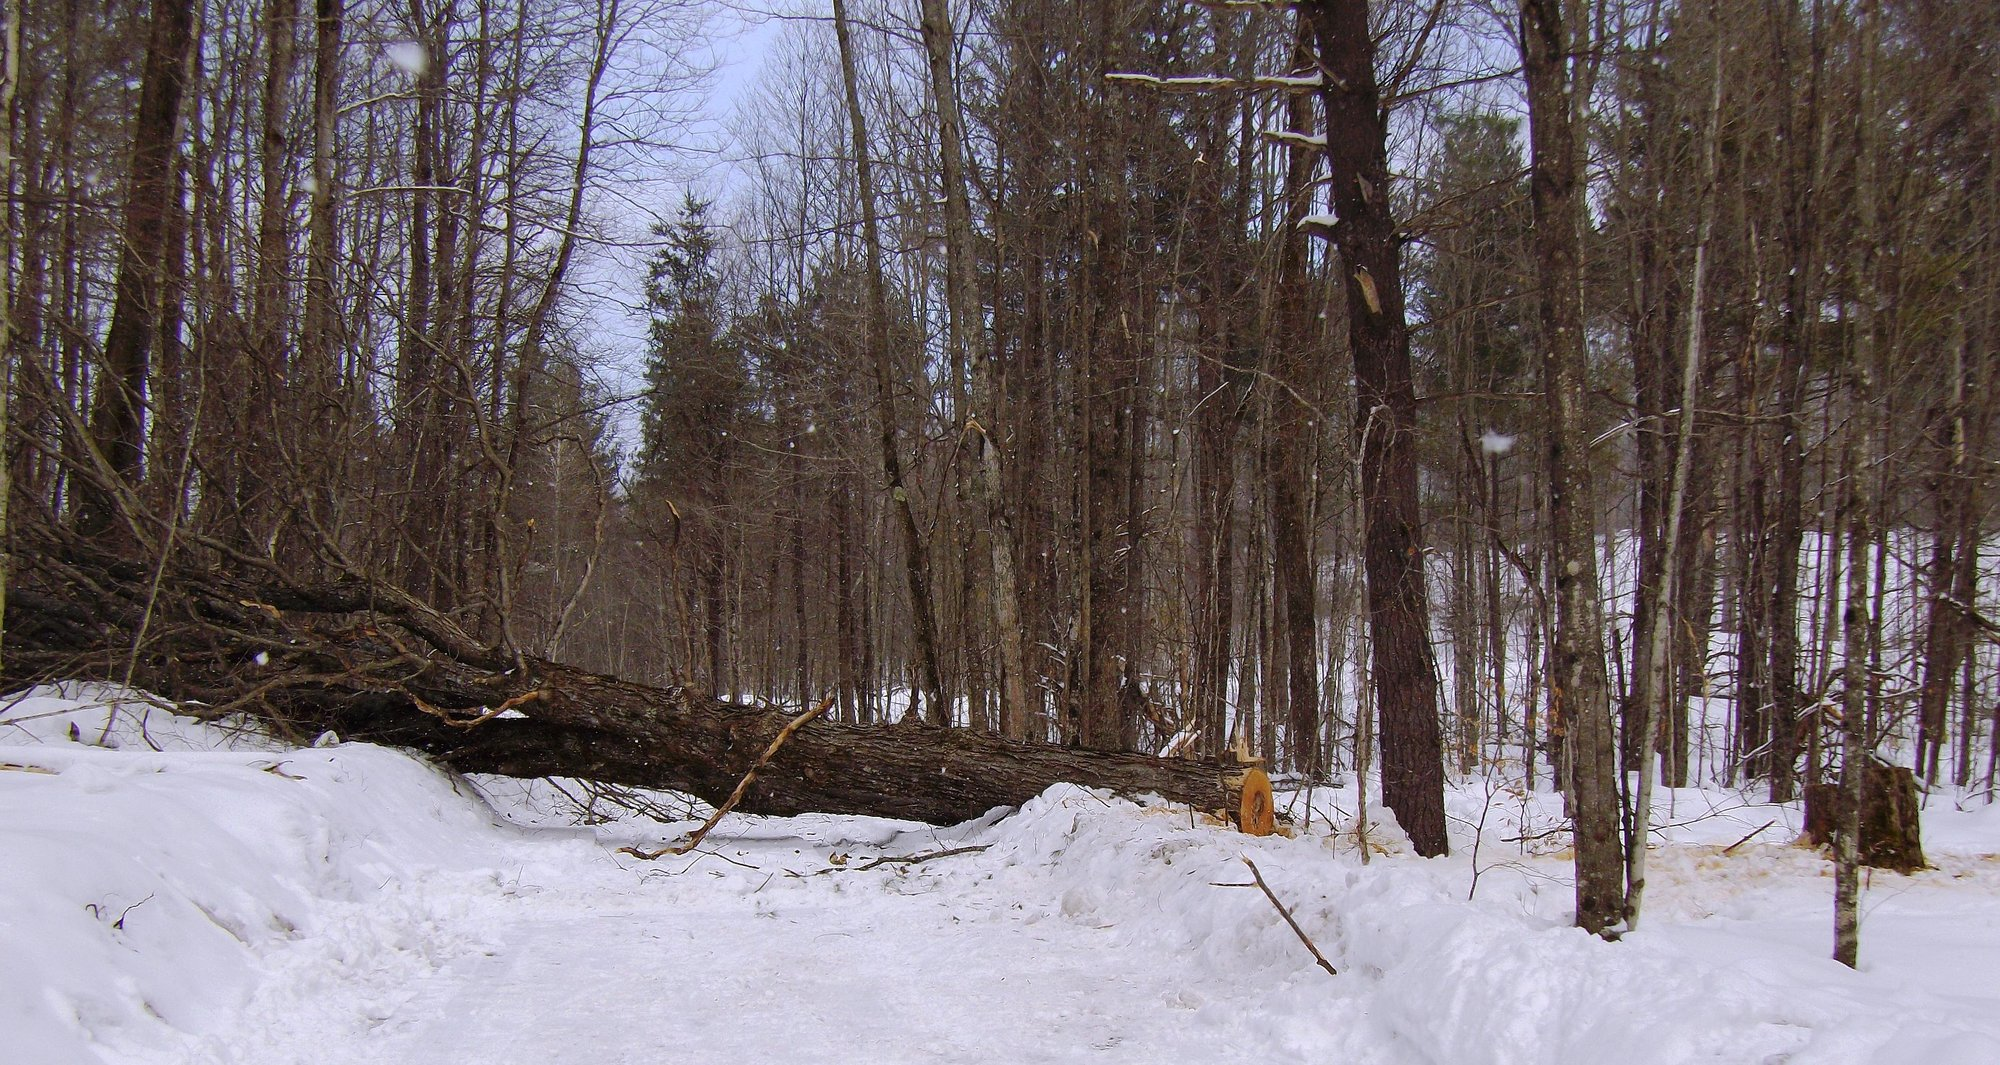 One of the felled maple trees cut down with the bottom section removed.